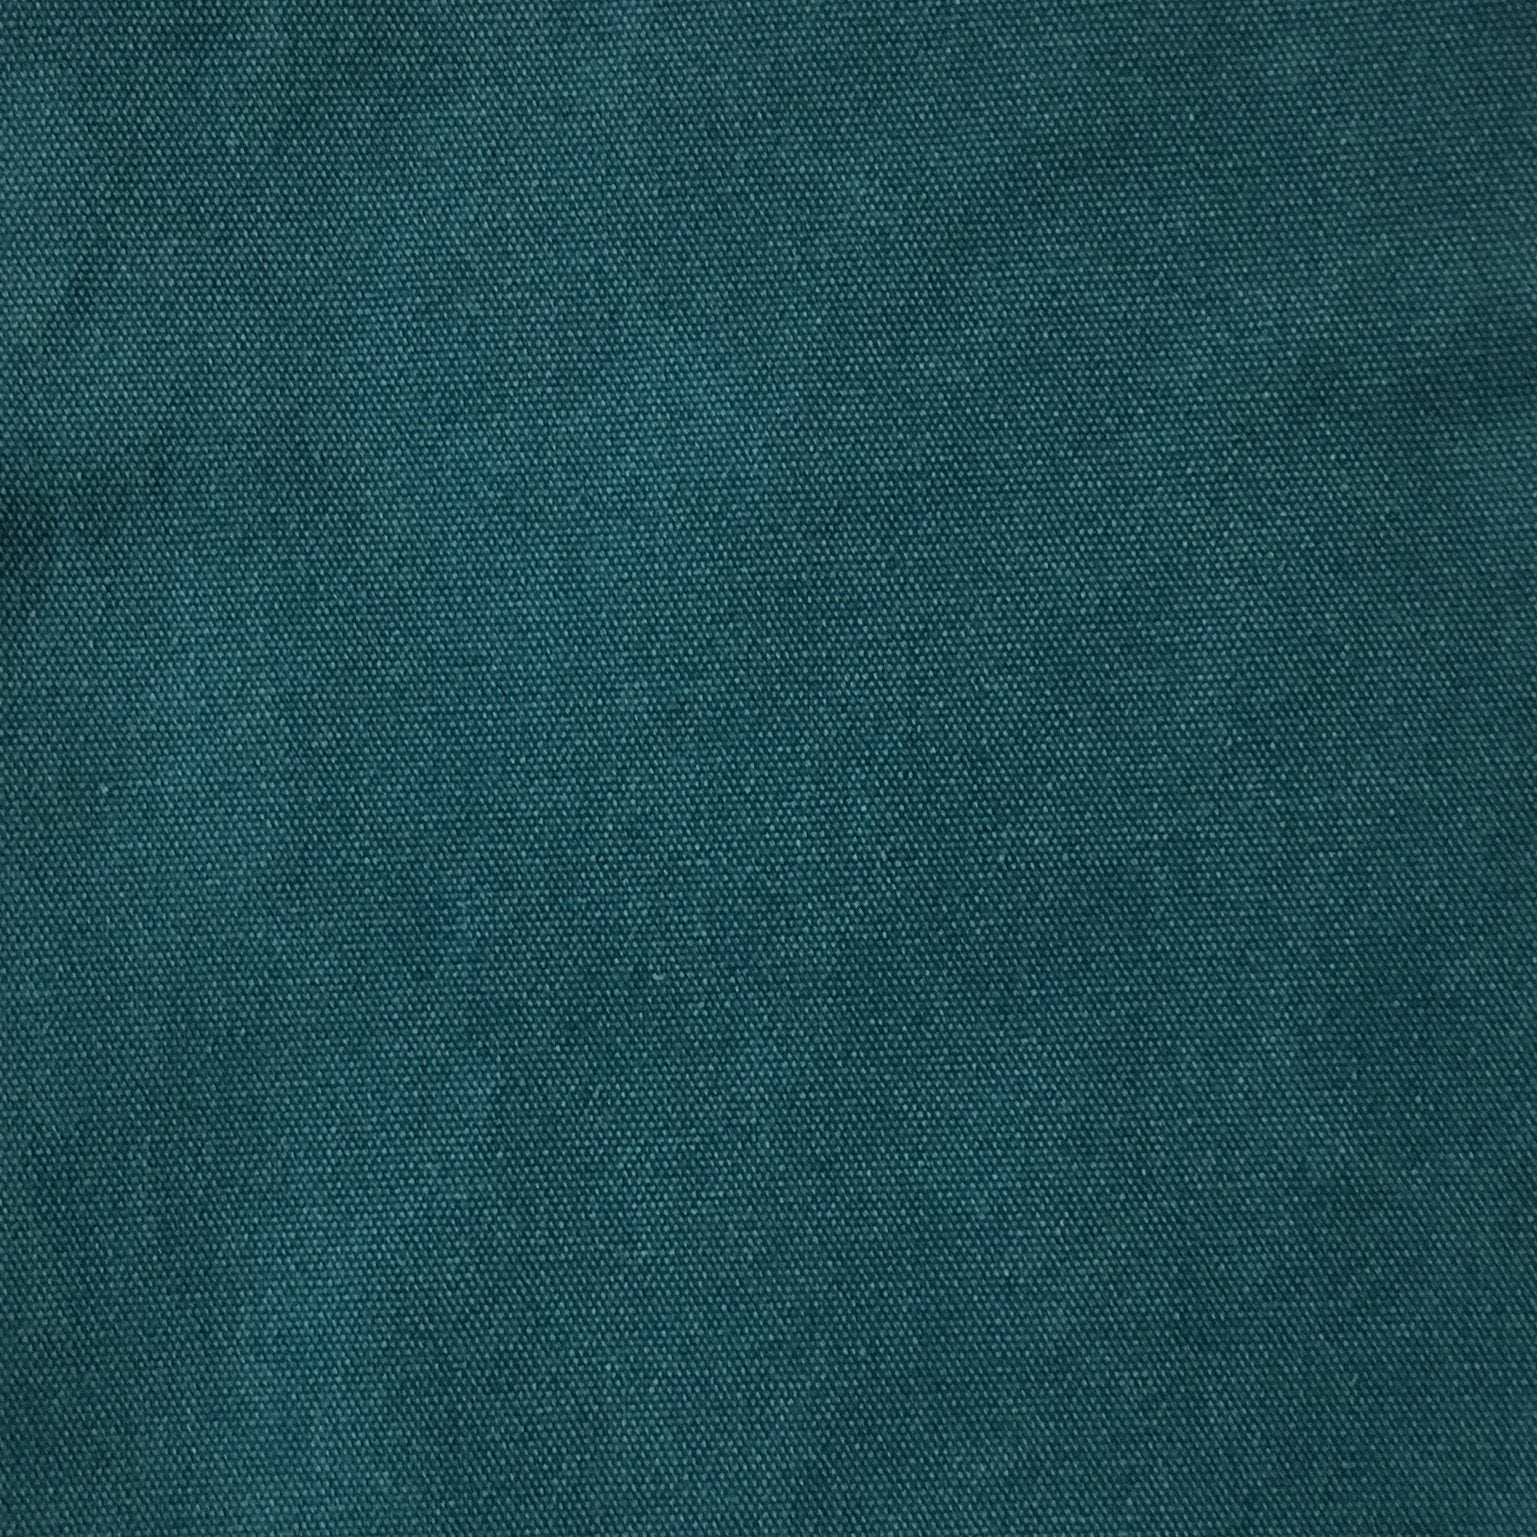 Lido Cotton Canvas Upholstery Fabric By The Yard 16 Colors